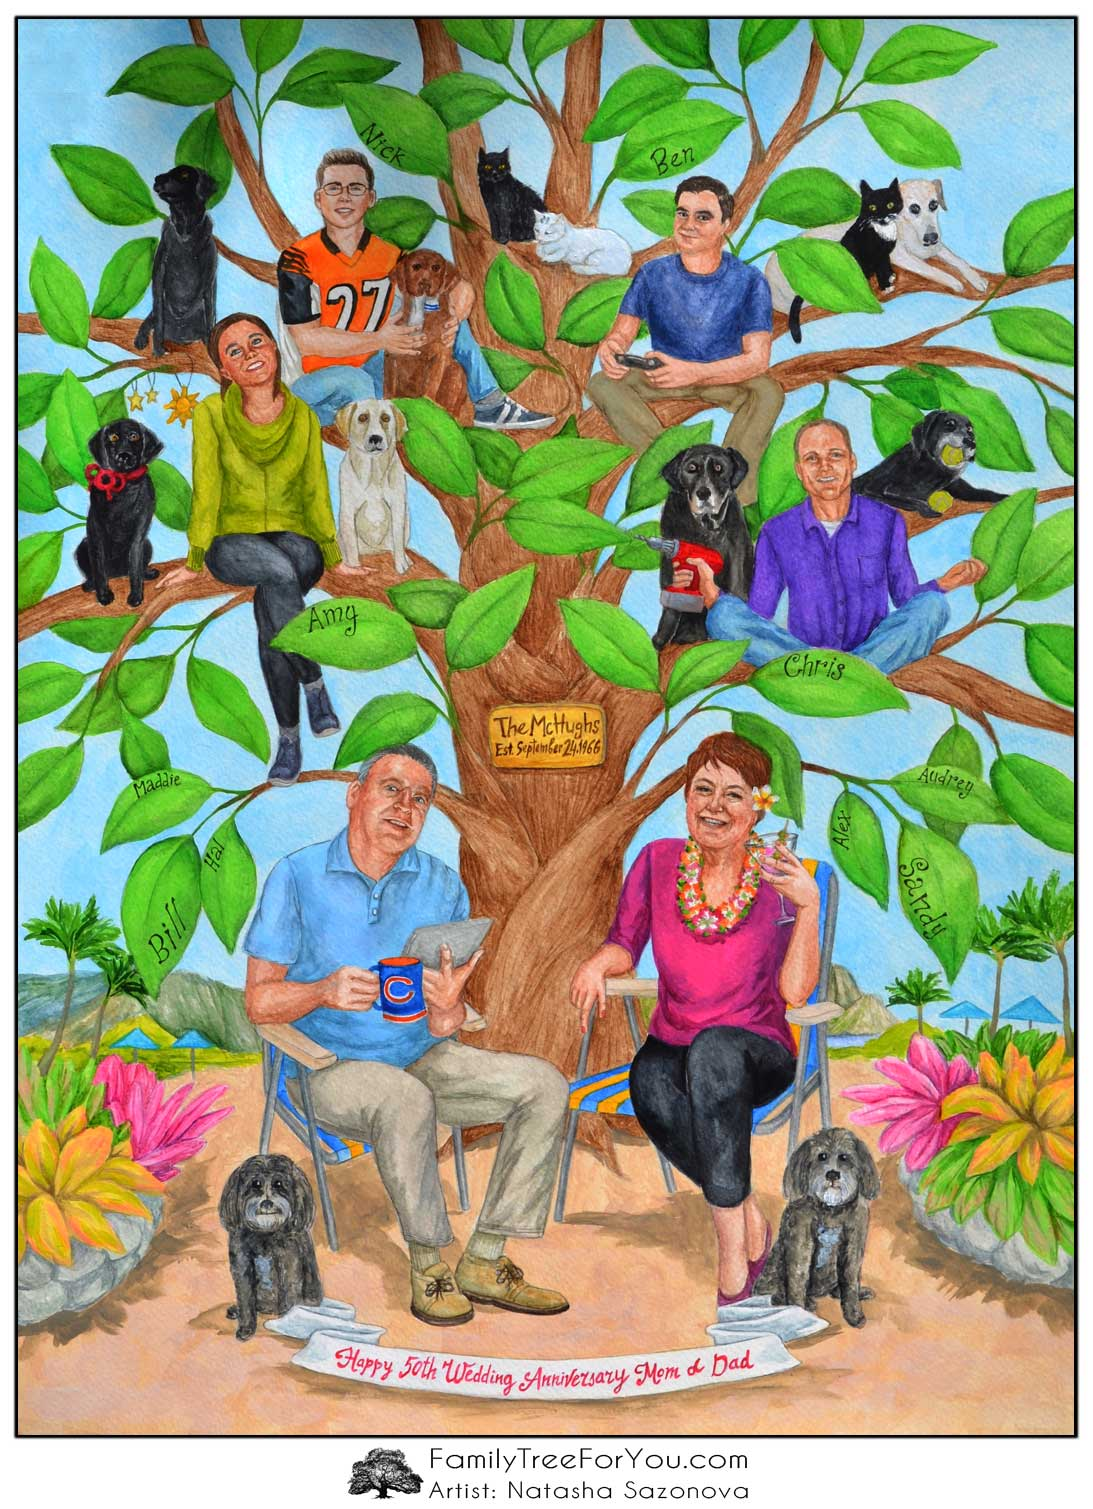 Humous family portrait art in the style of a family tree painting